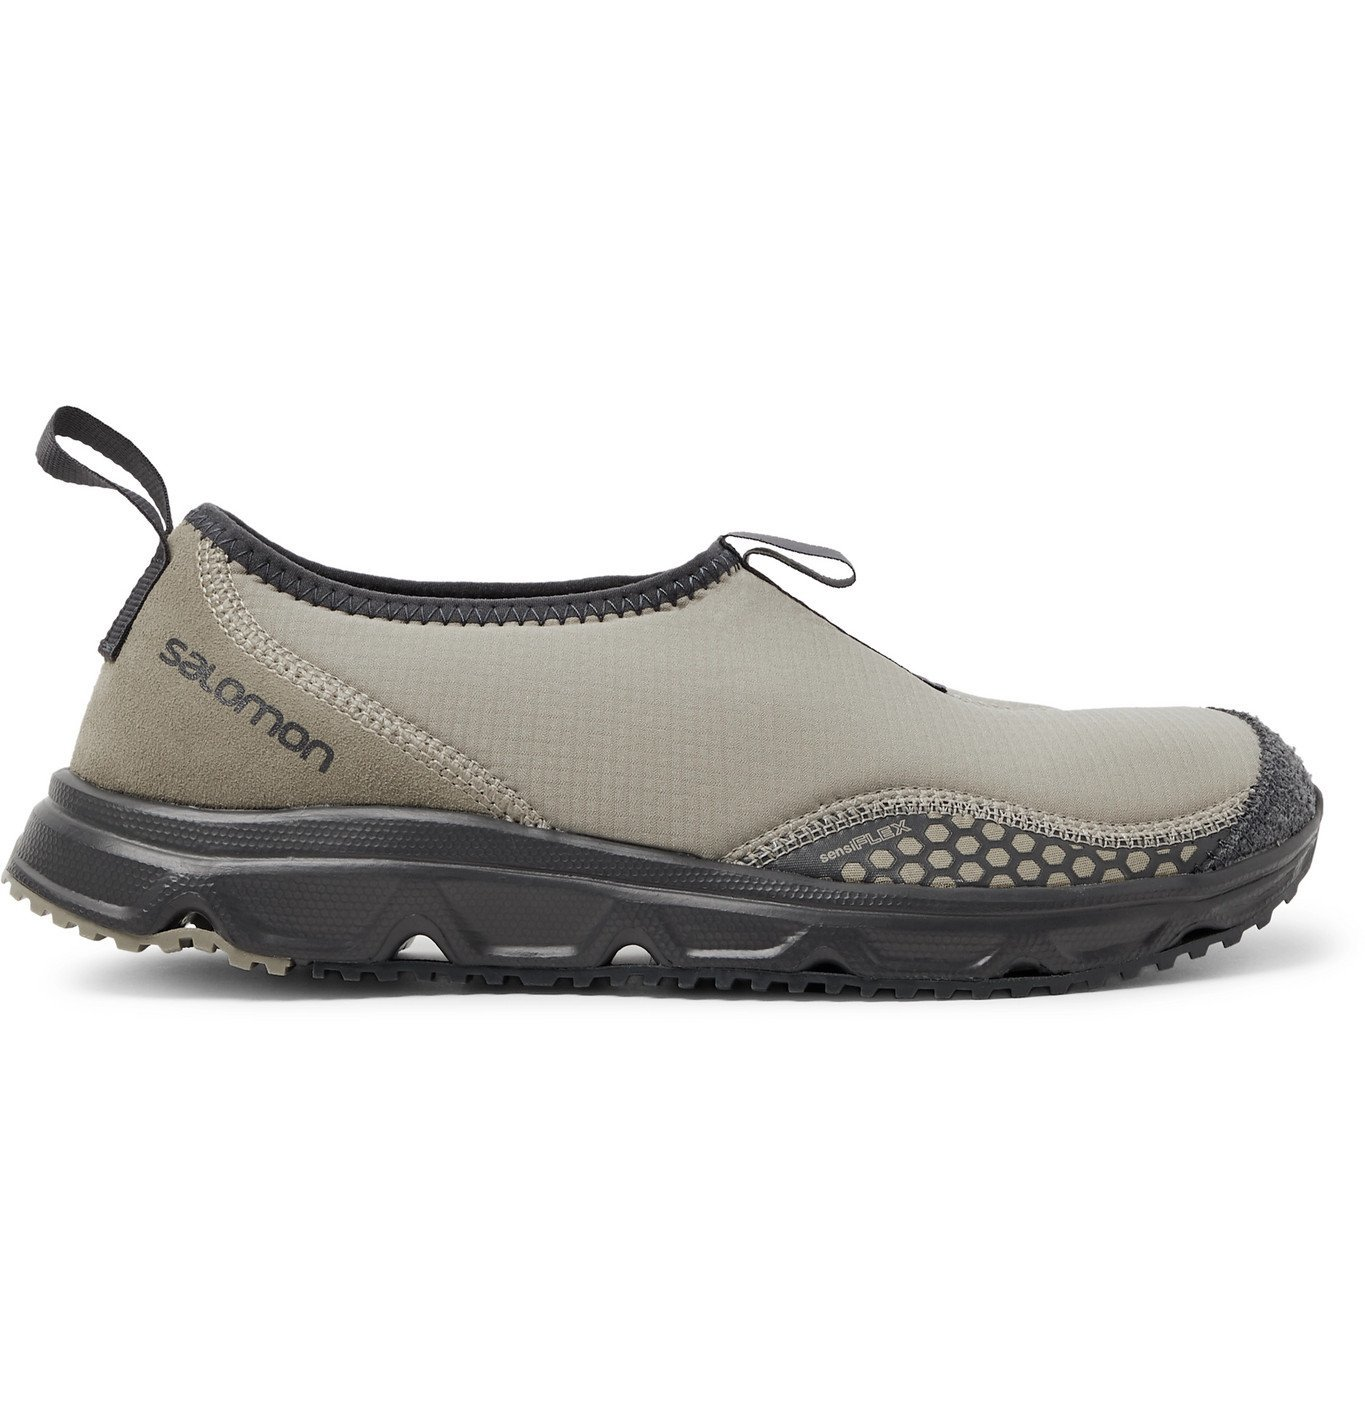 Photo: Salomon - RX Snow Moc Advanced Ripstop, Suede and Rubber Sneakers - Neutrals